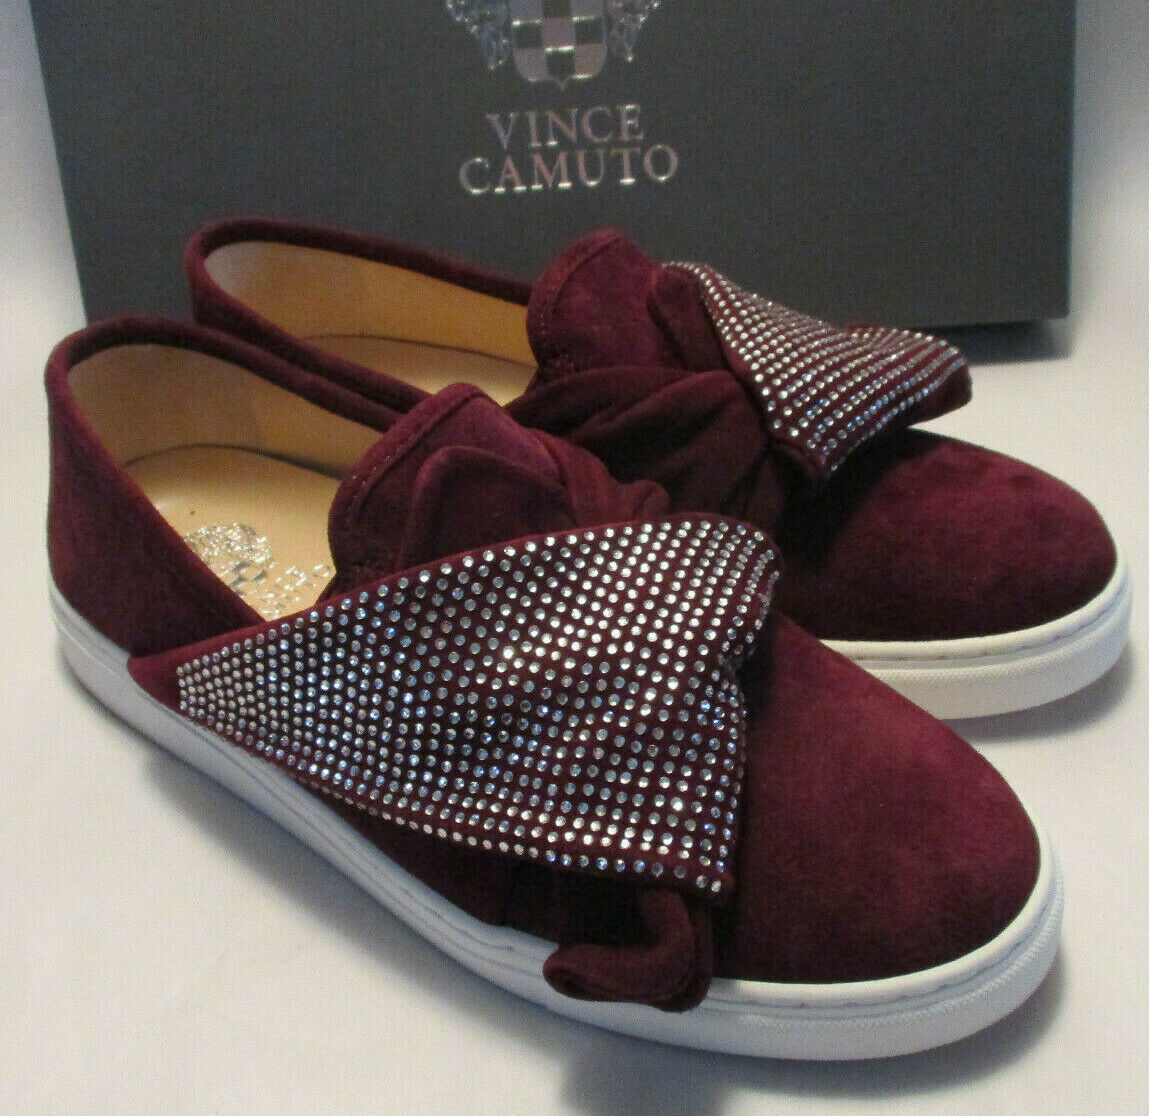 New Vince Camuto Barita 8M Cabernet color Suede Leather Rhinestone Fold Sneakers